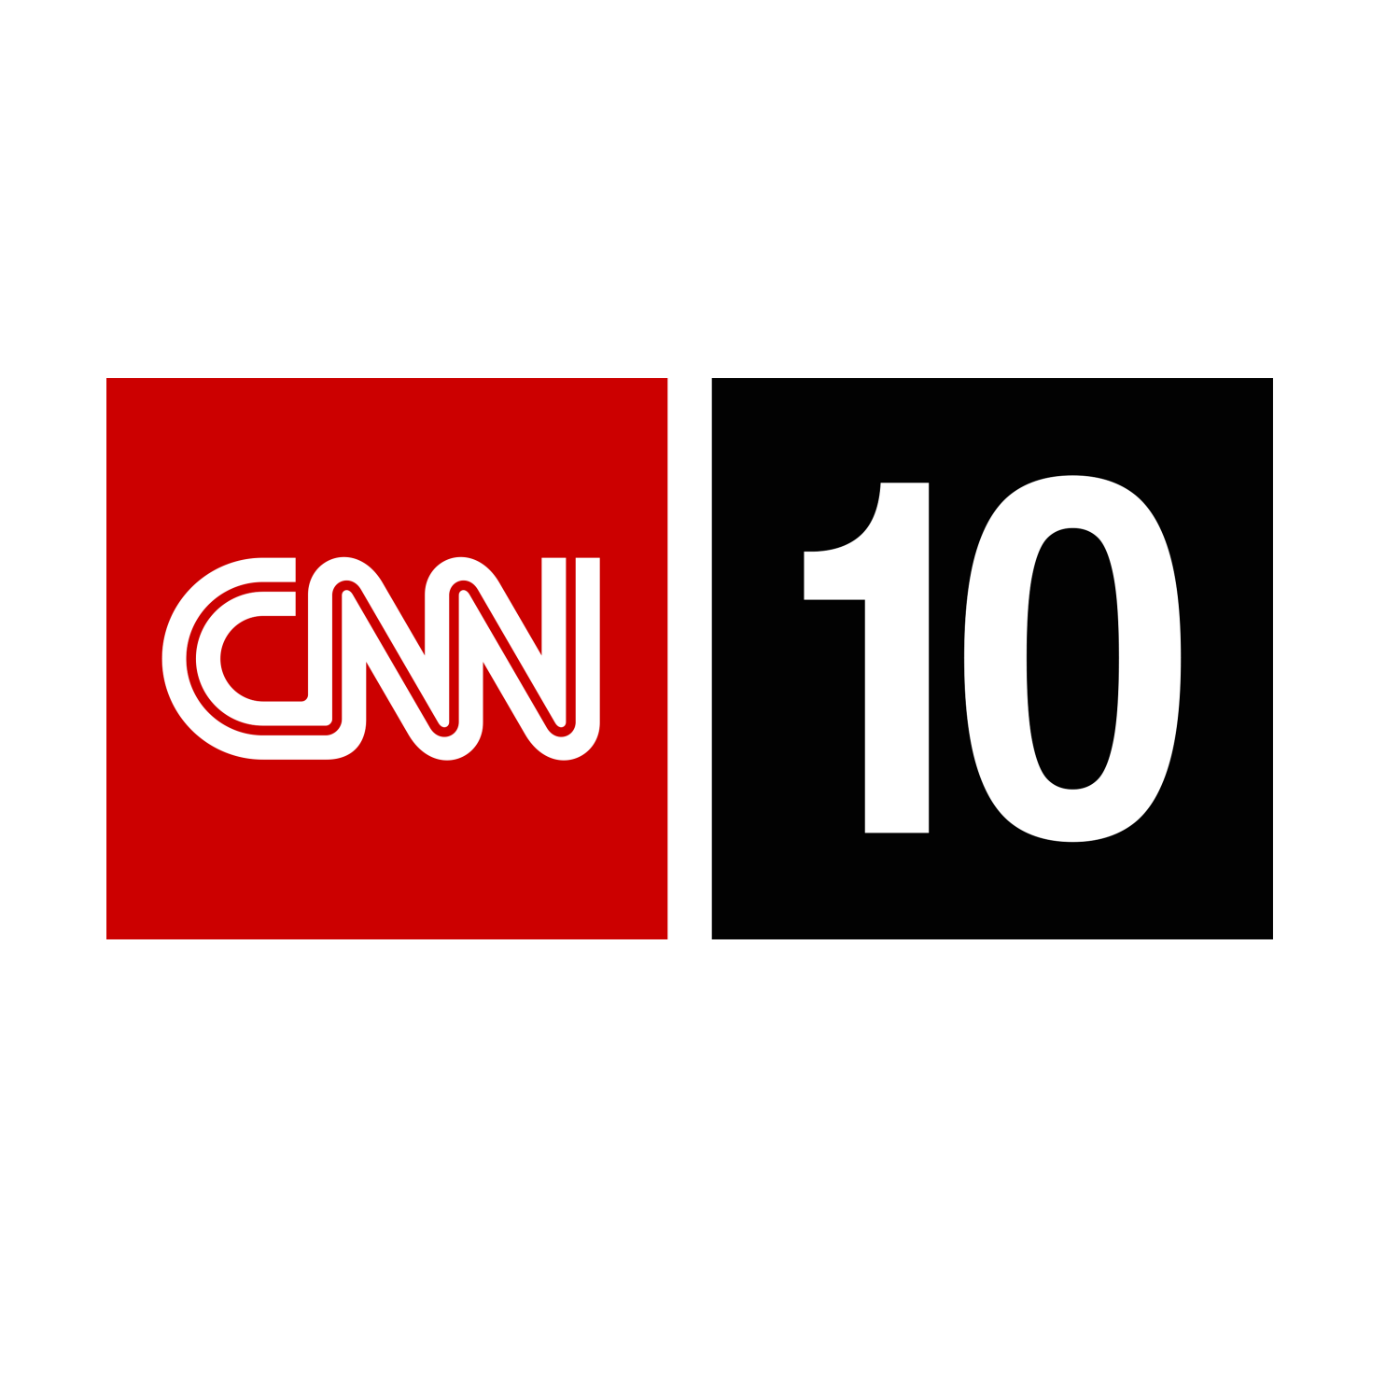 CNN Student News - September 27, 2012